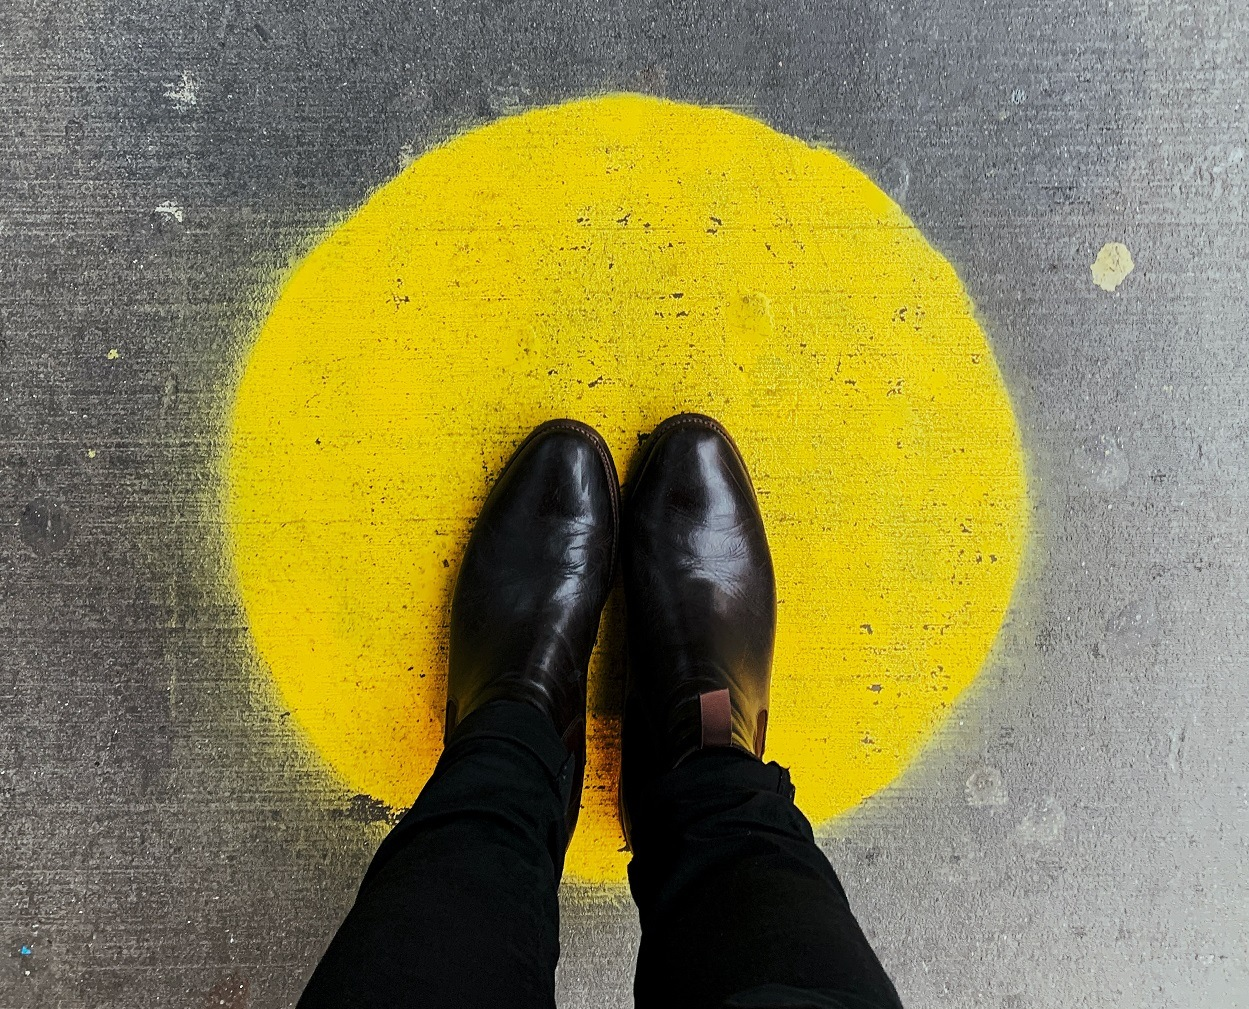 shoes on yellow dot